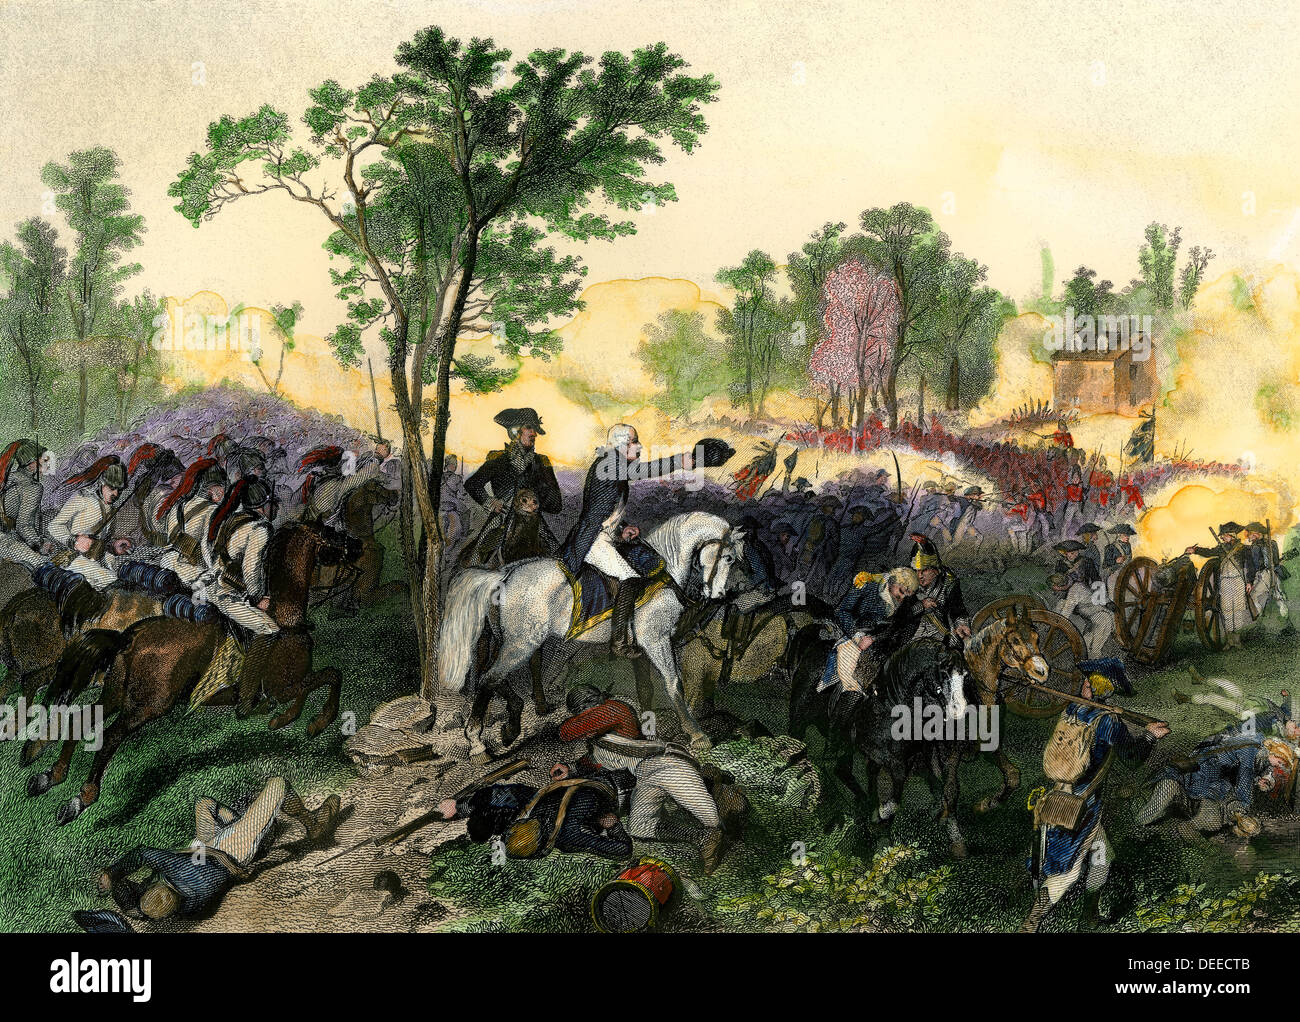 Battle of Eutaw Springs with Americans commanded by Nathanael Greene, Hand-colored engraving - Stock Image